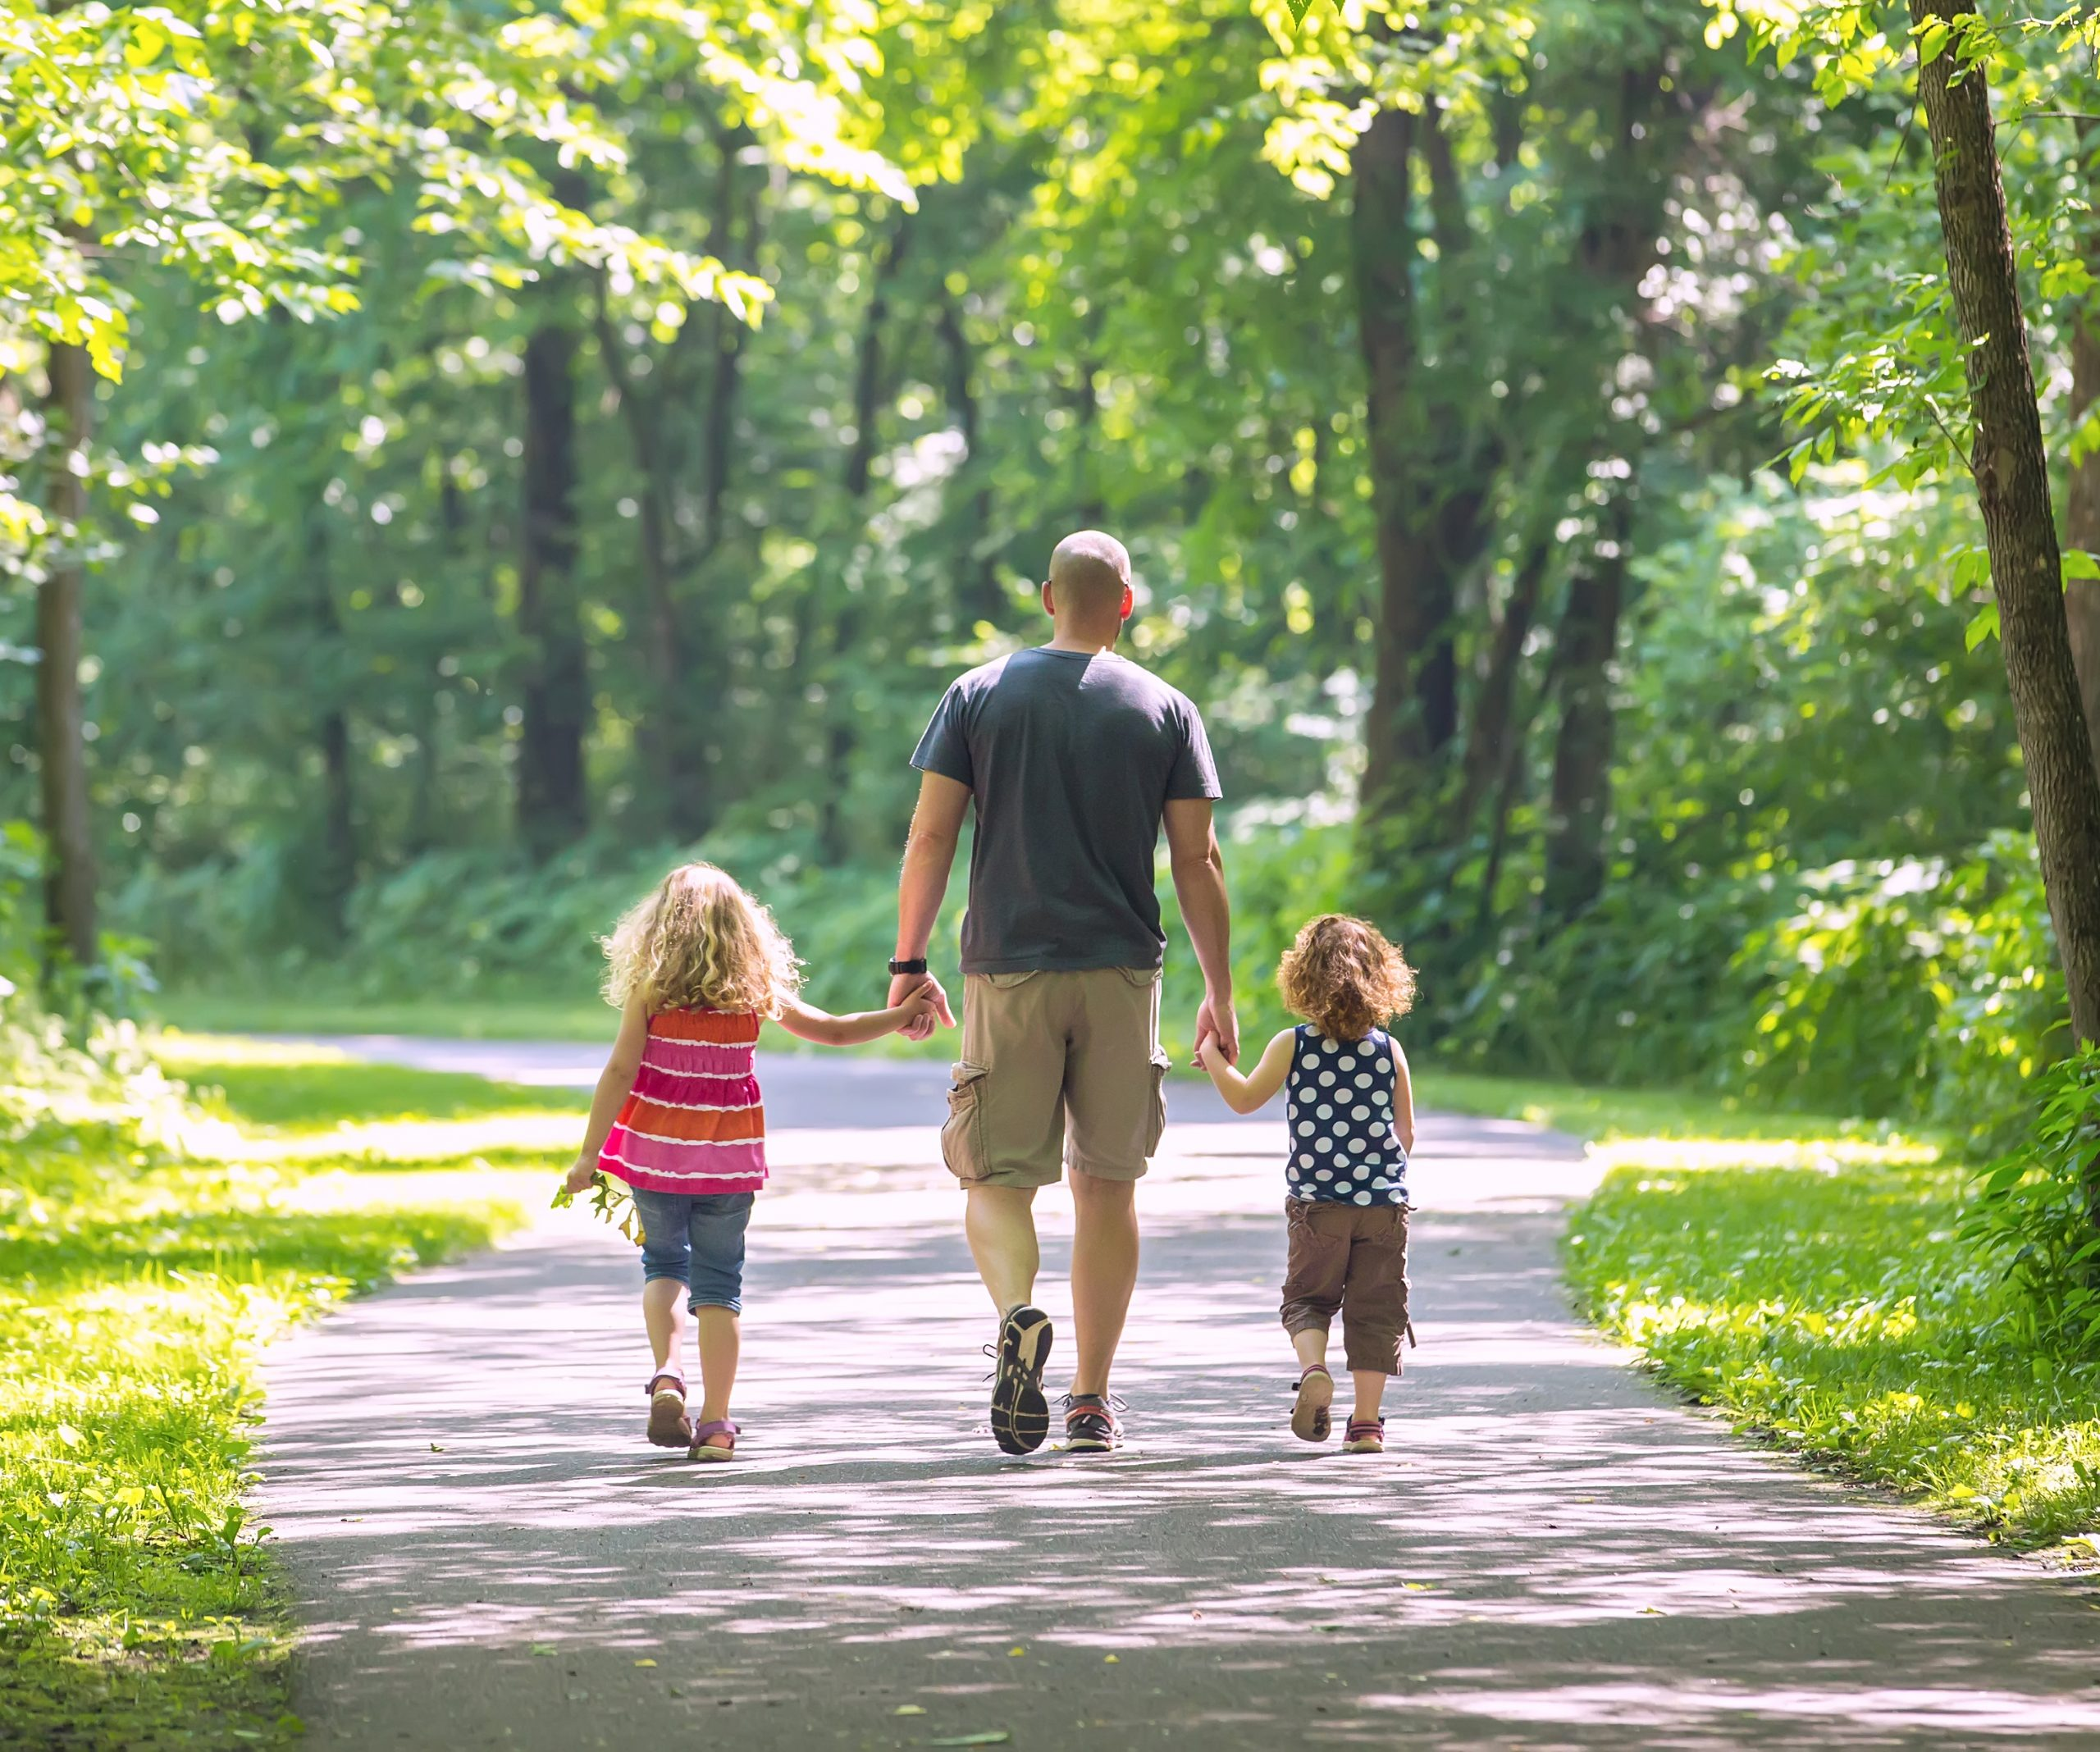 a father and his two young daughters going for a walk on a paved trail through the wooded park.